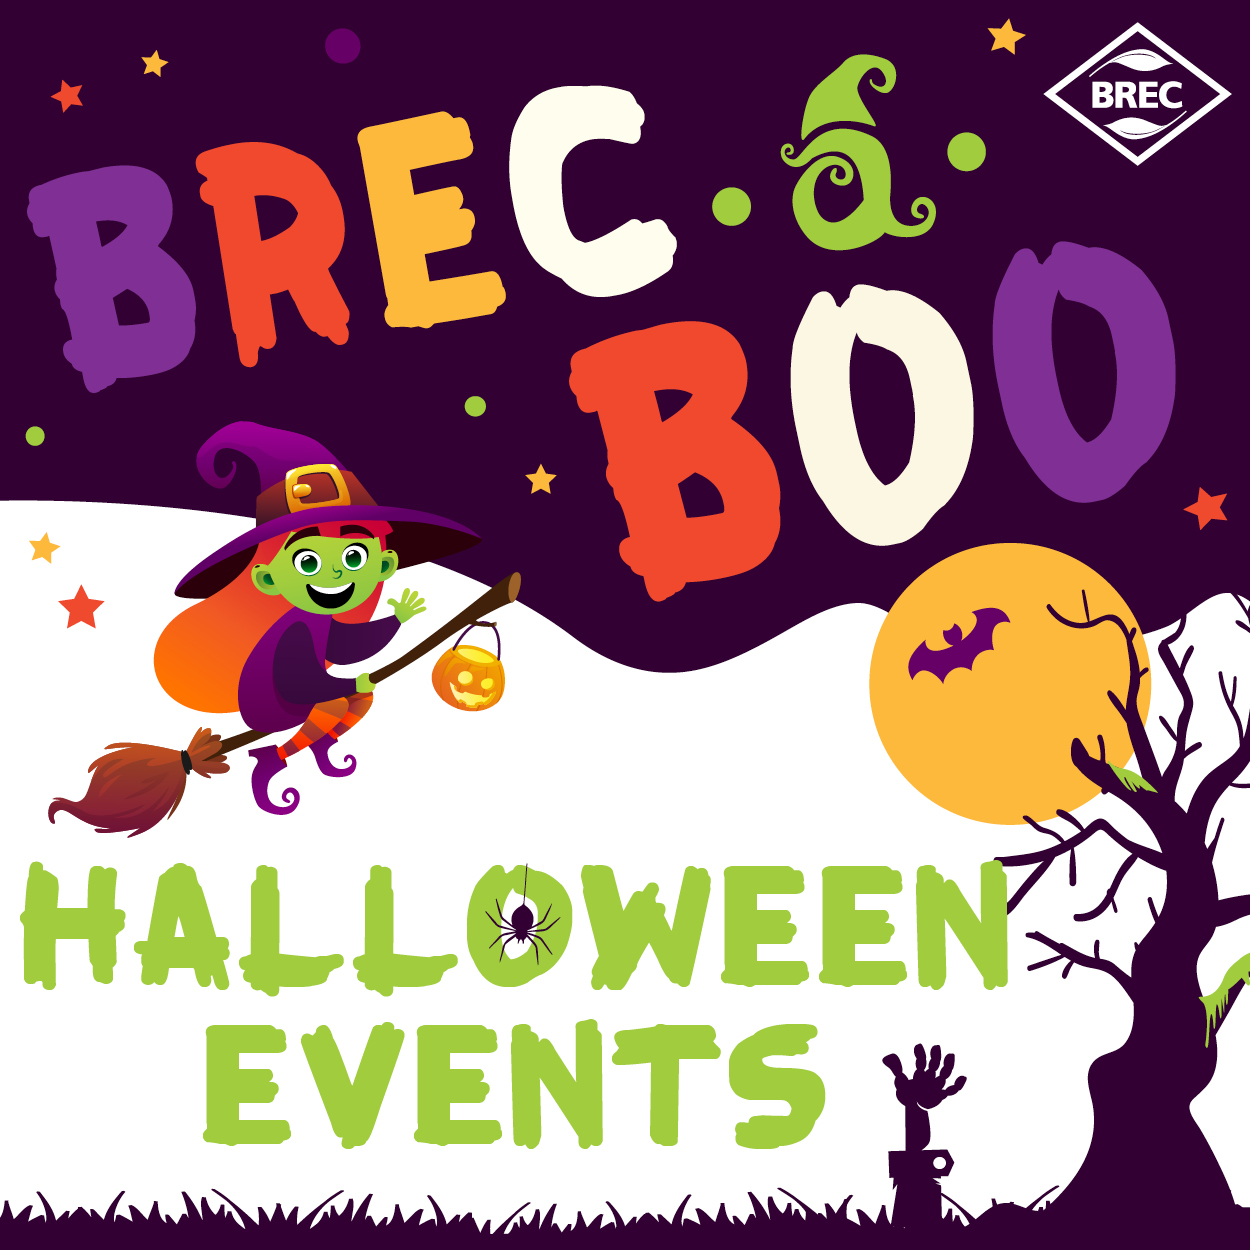 BREC Halloween Events BREC A Boo